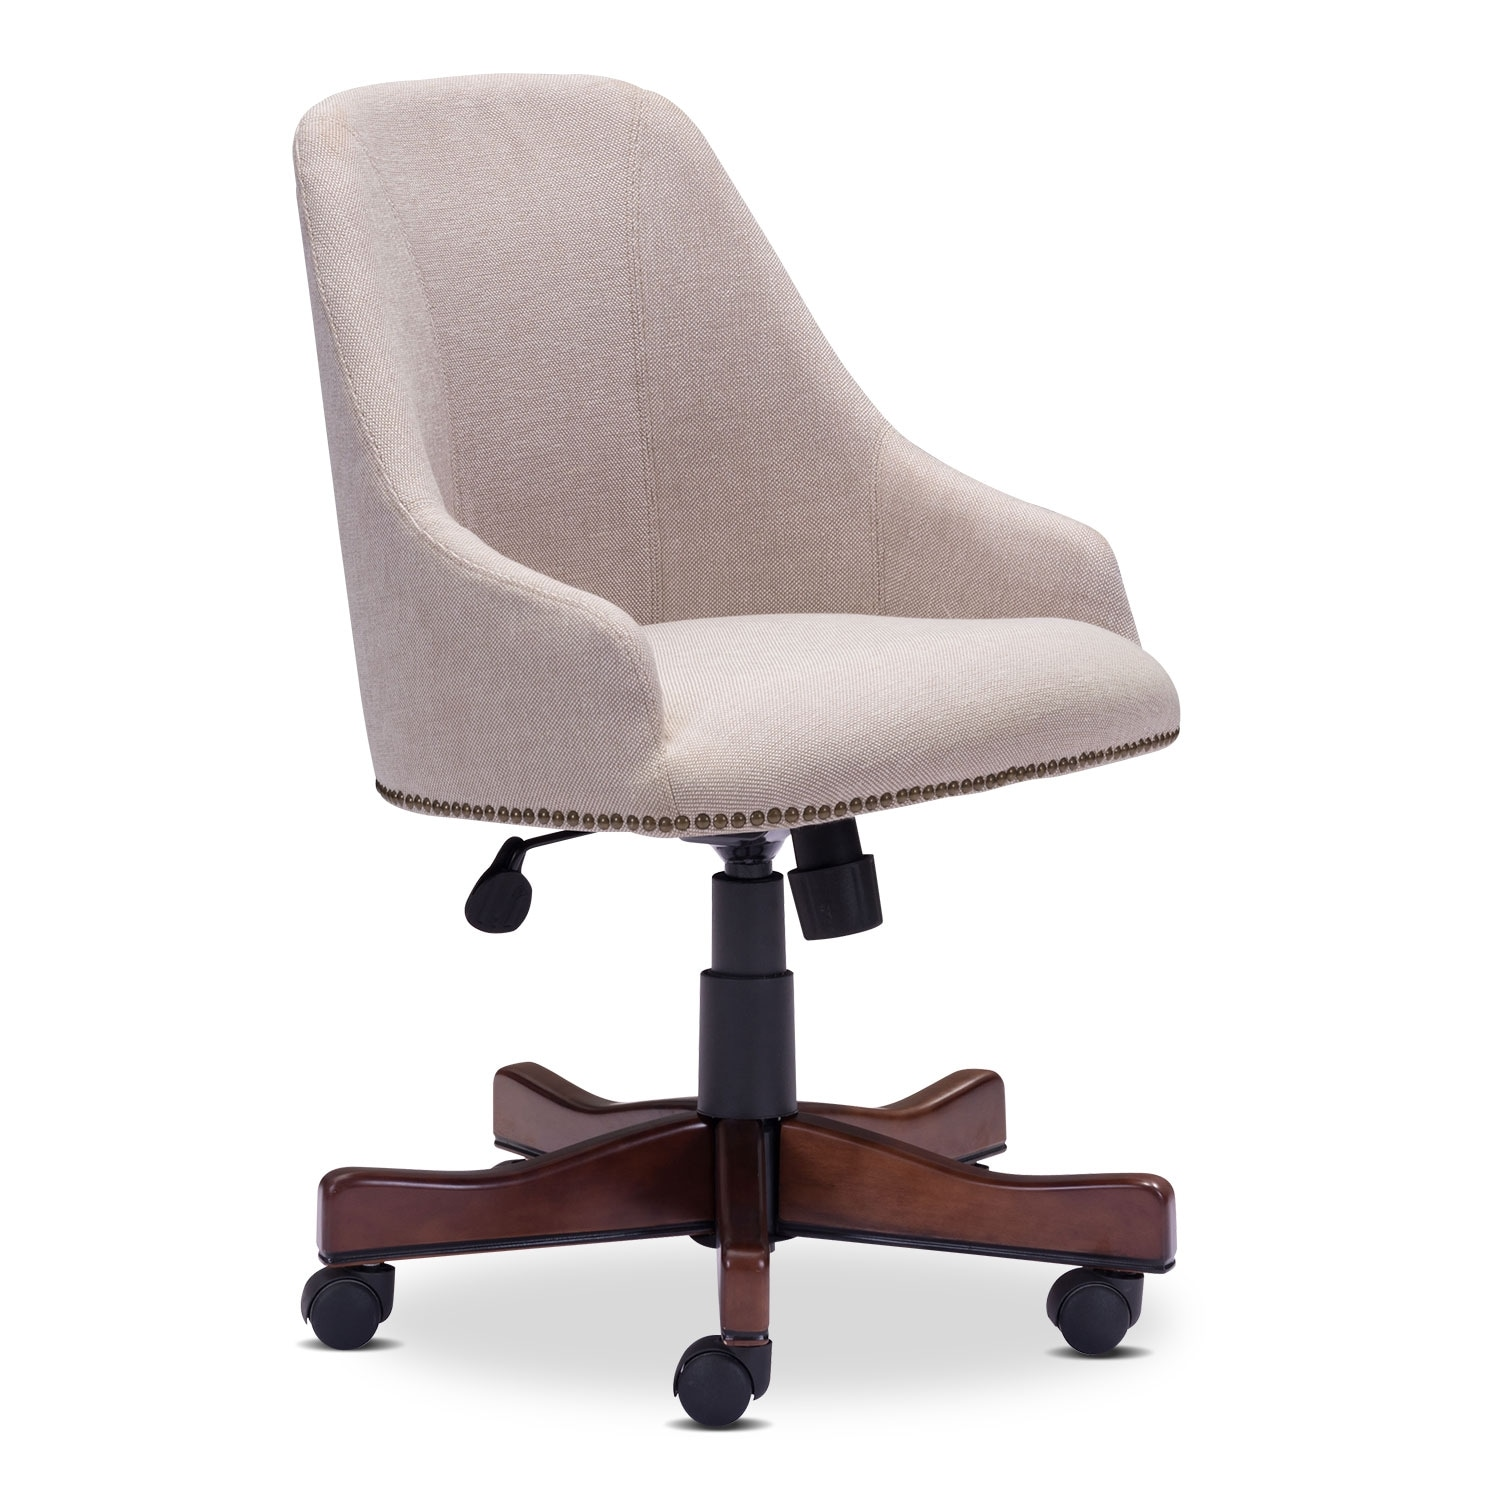 Saddle Office Chair Saddle Office Arm Chair